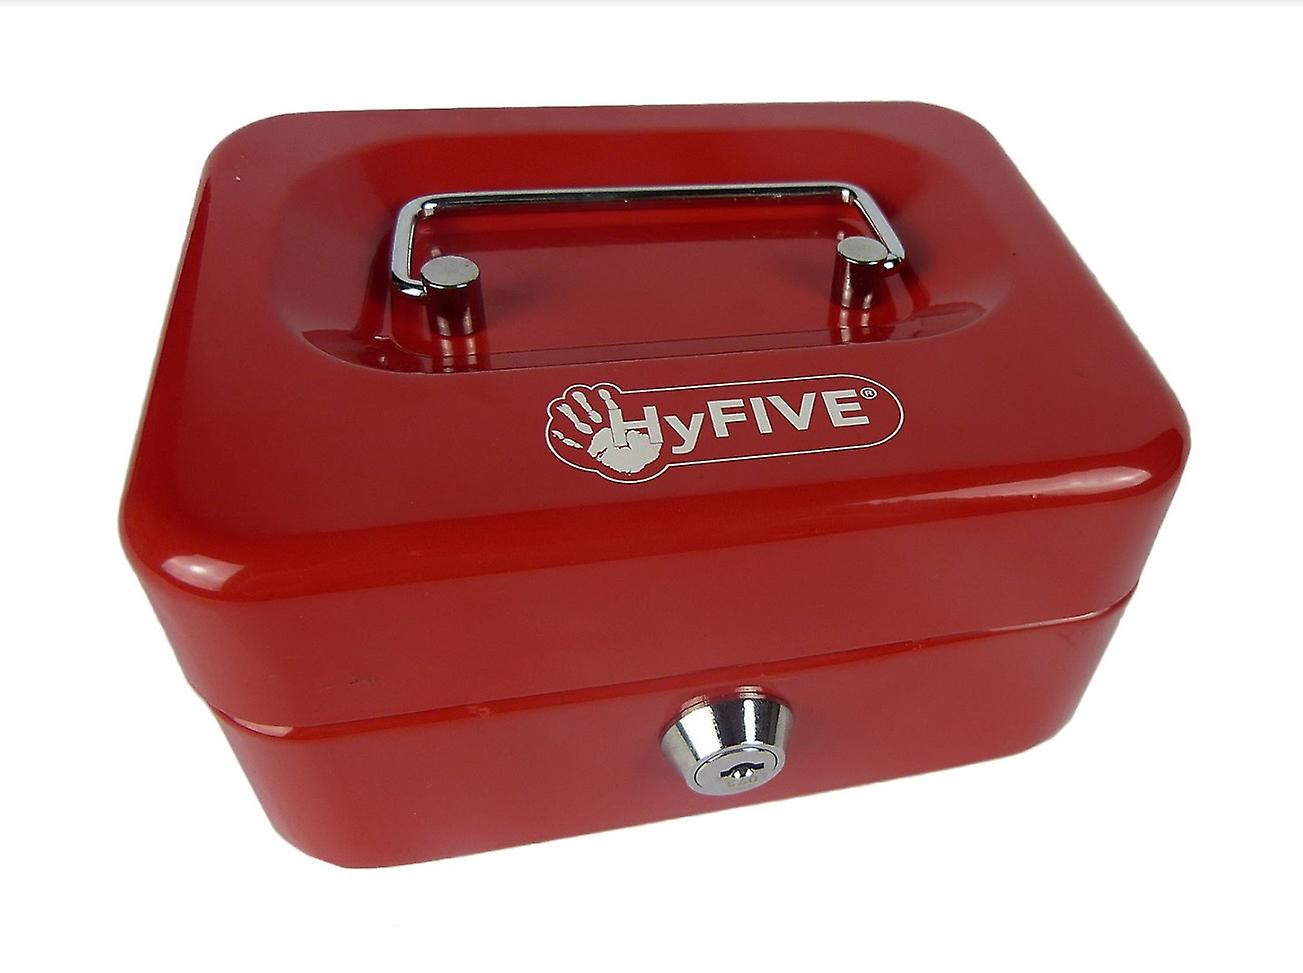 Hyfive® Steel Security Petty Cash Box with Keys & Tray in Red, 6